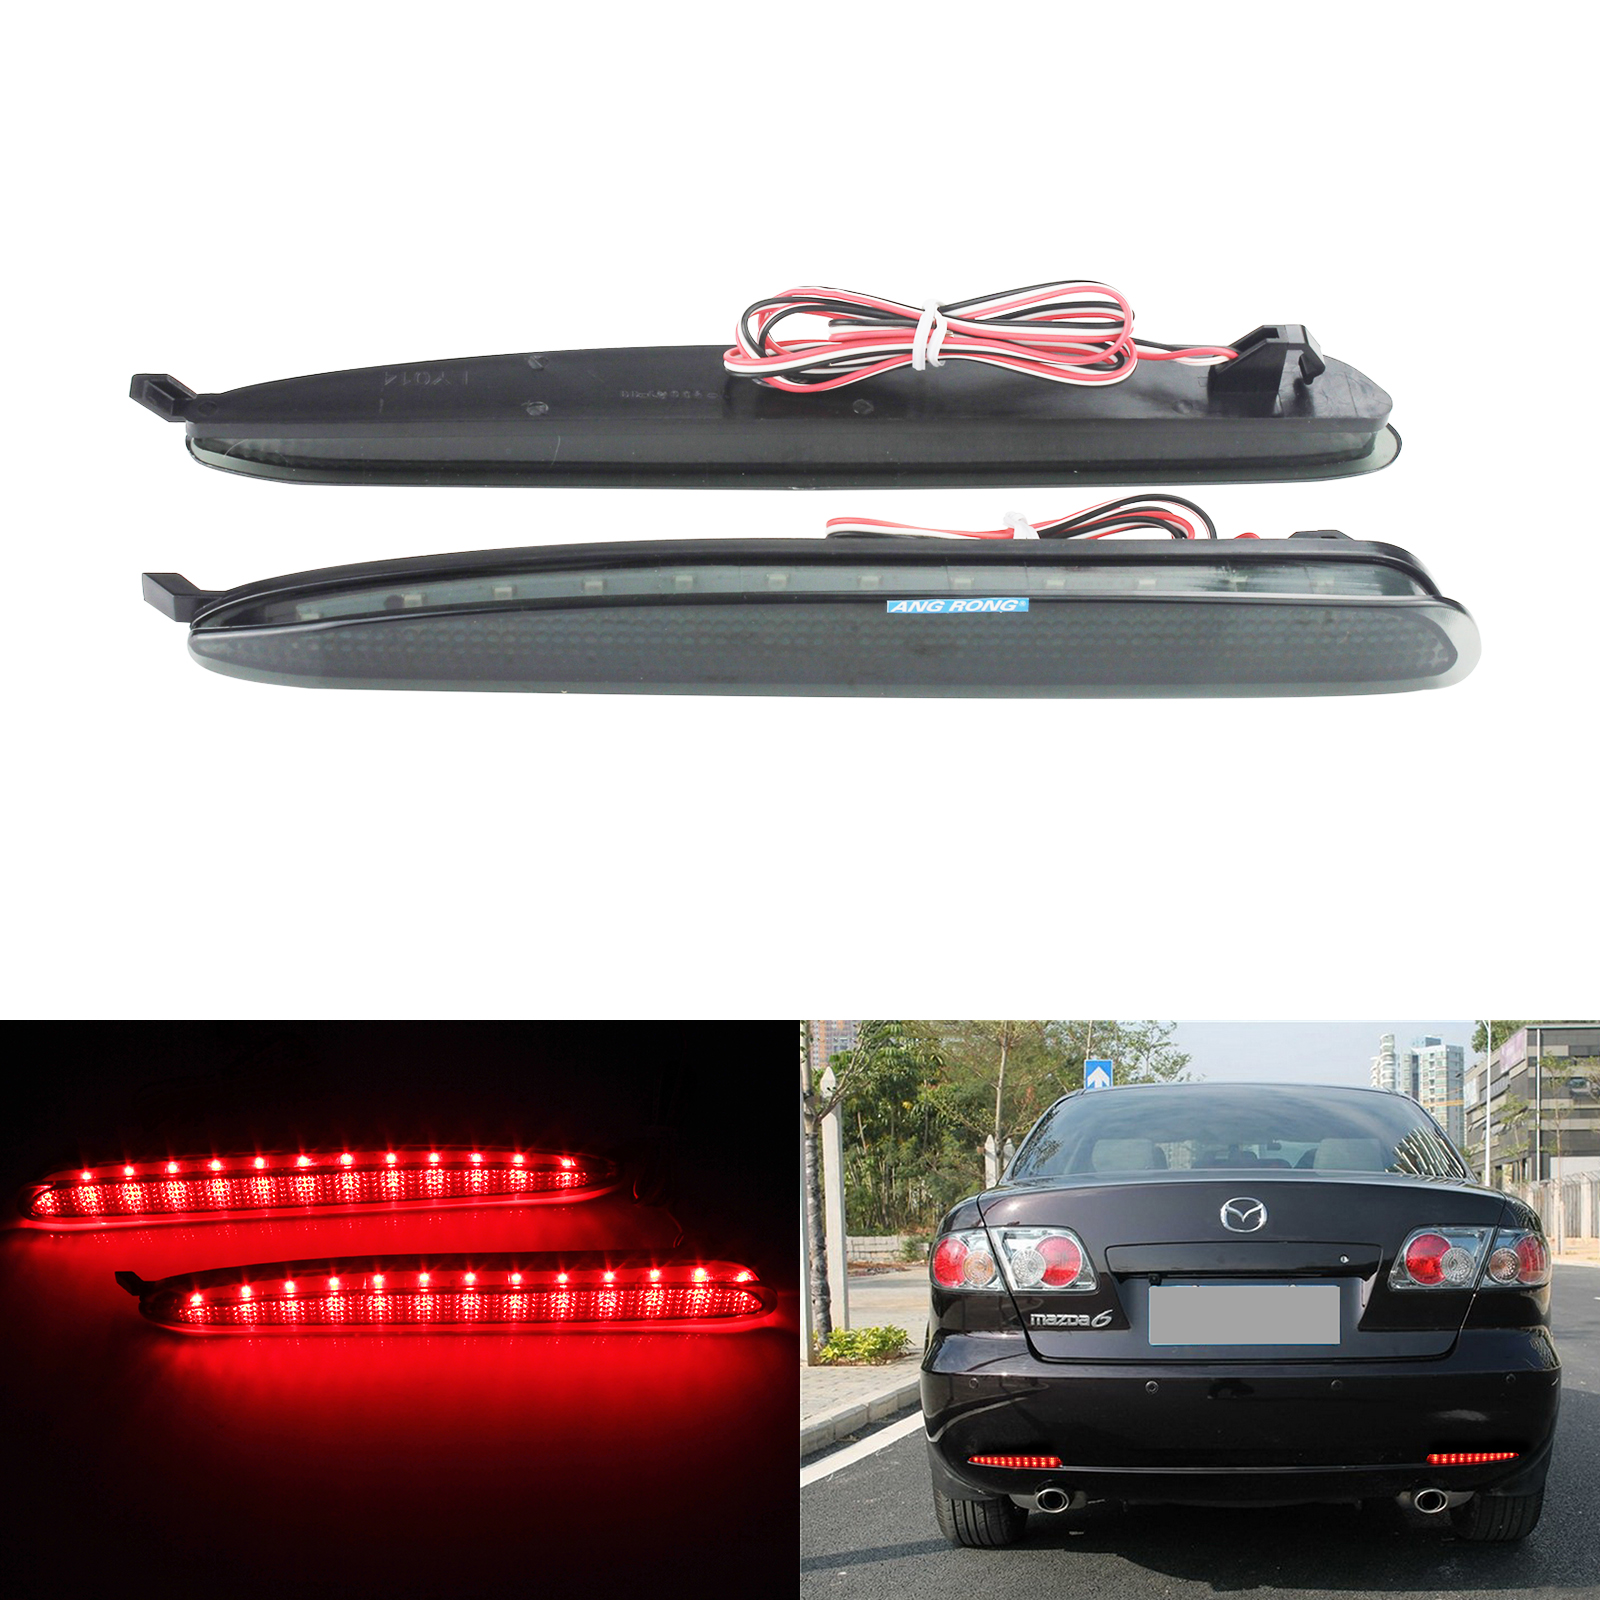 ANGRONG 2x Red 24 LED Rear Bumper Reflector <font><b>Light</b></font> 2003-2008 For Mazda6 Atenza GG Mazdaspeed6 image